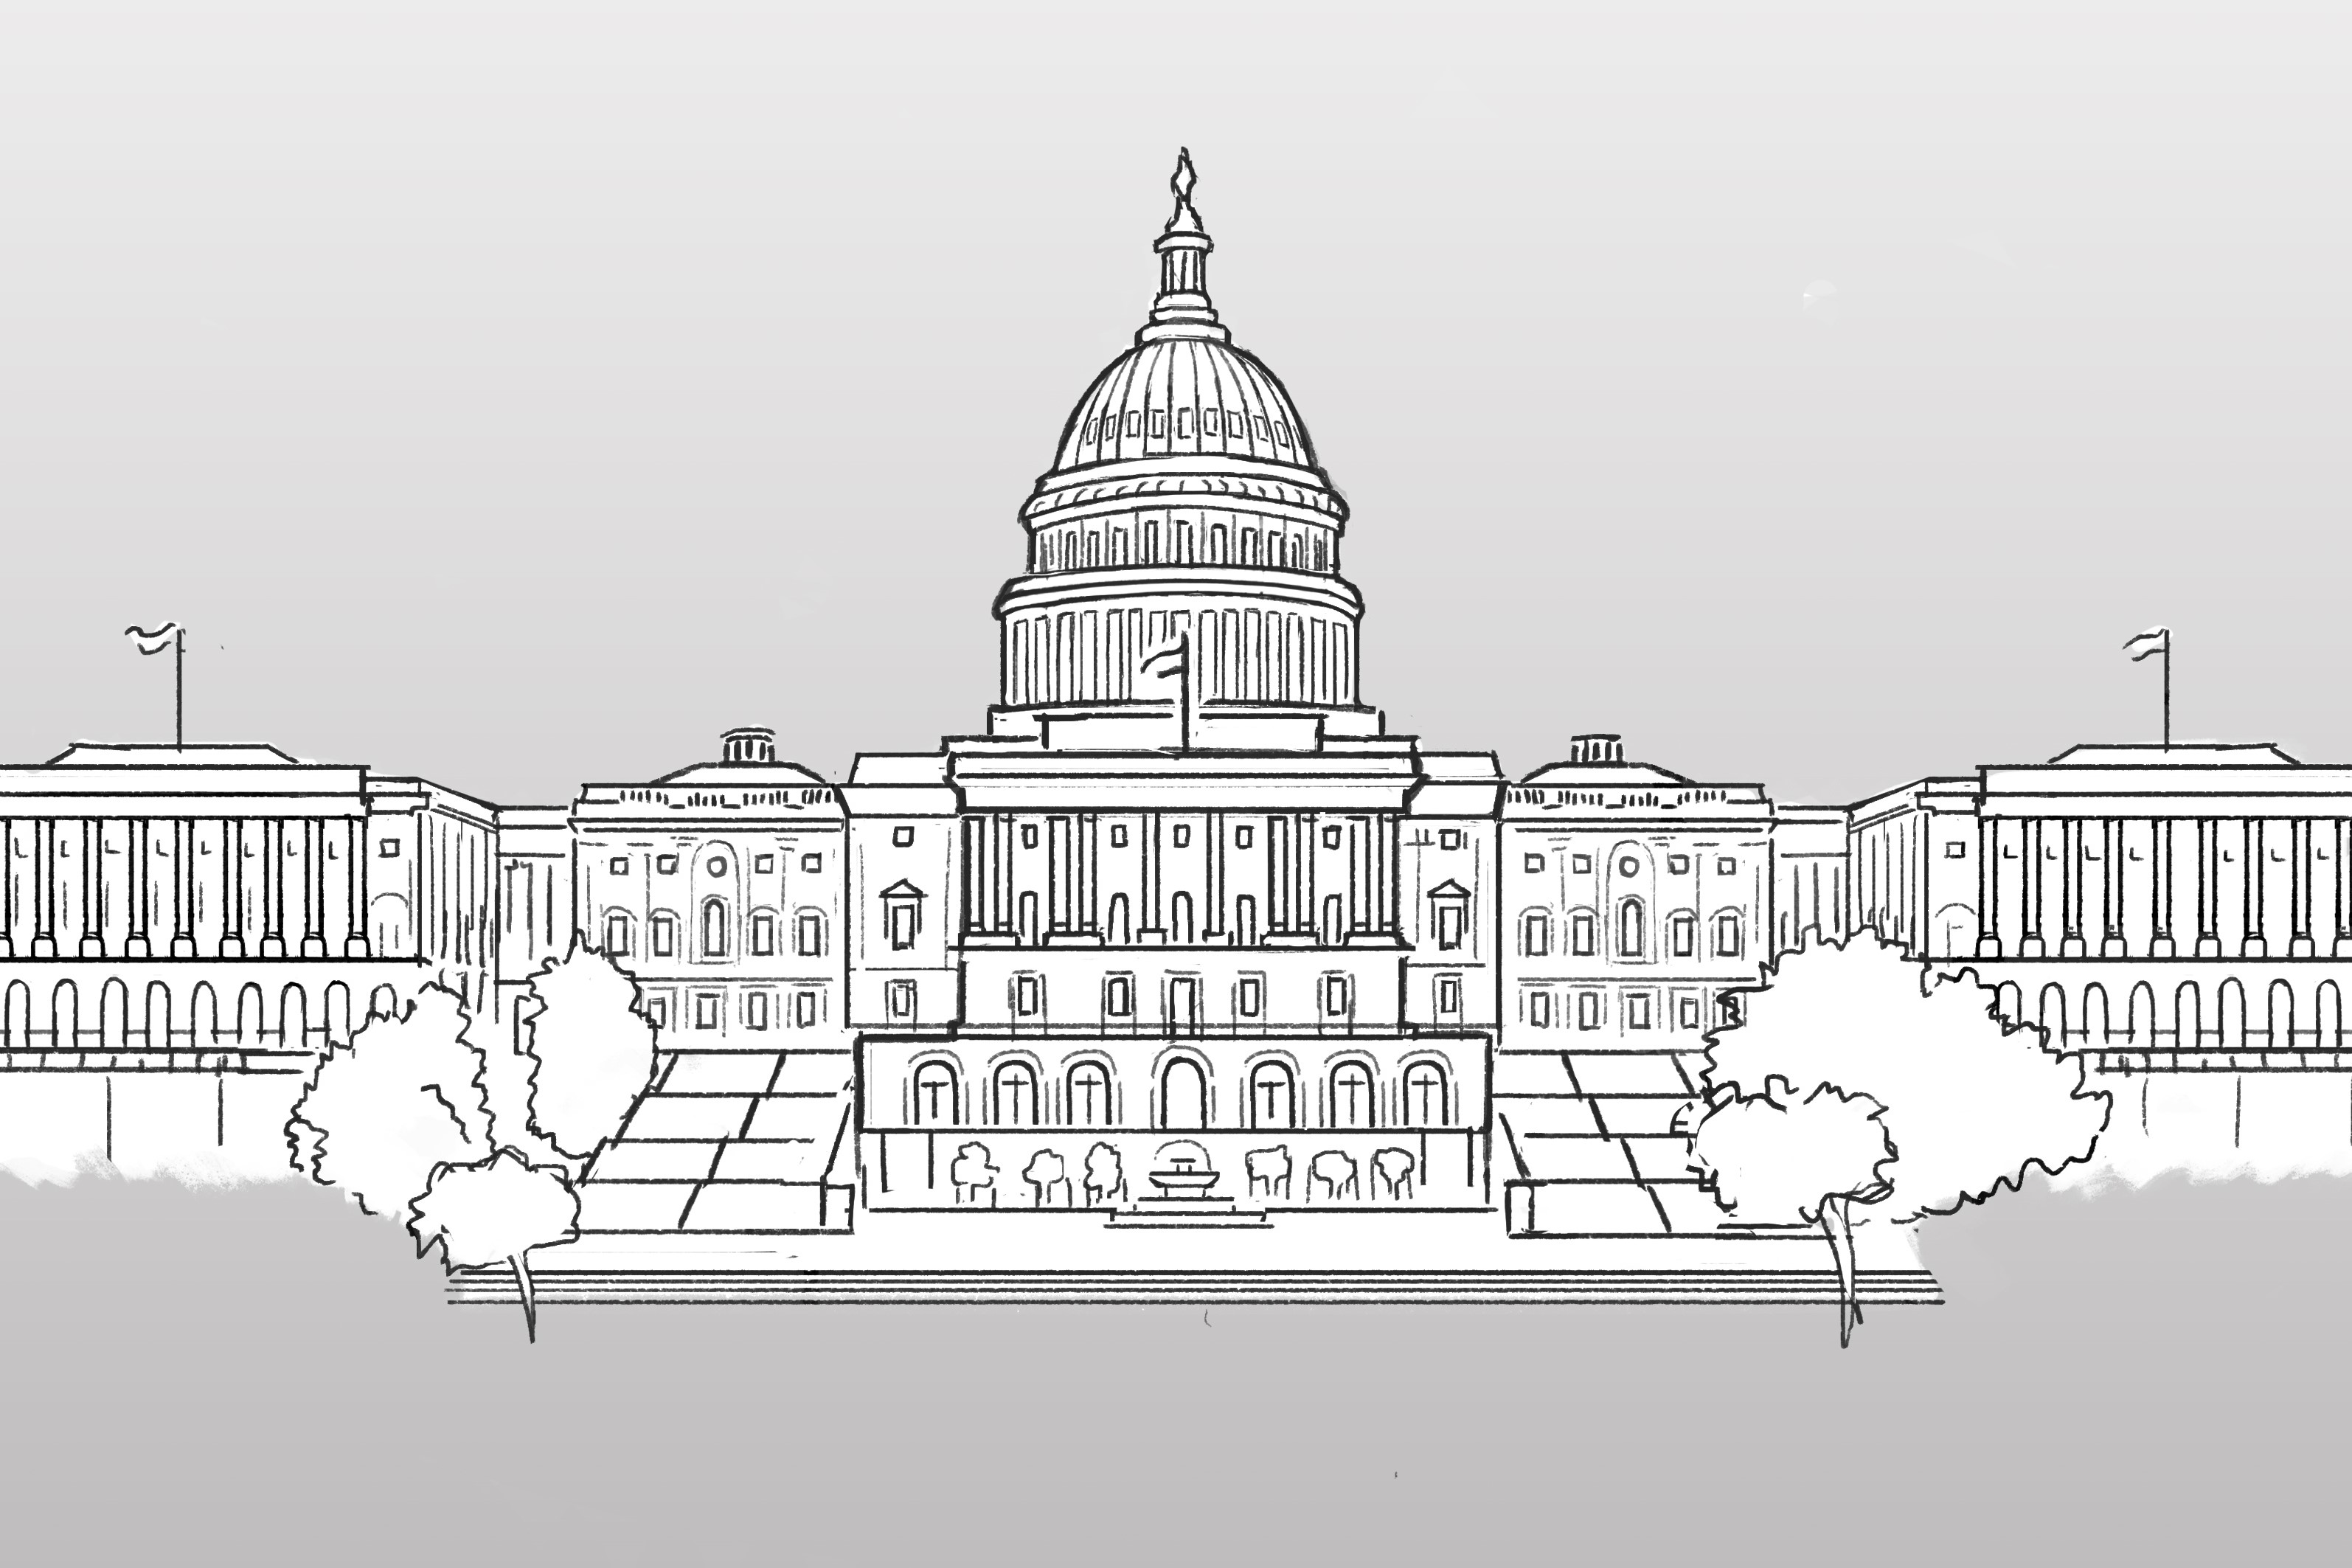 An NPR graphic of the Capitol building in Washington, D.C.